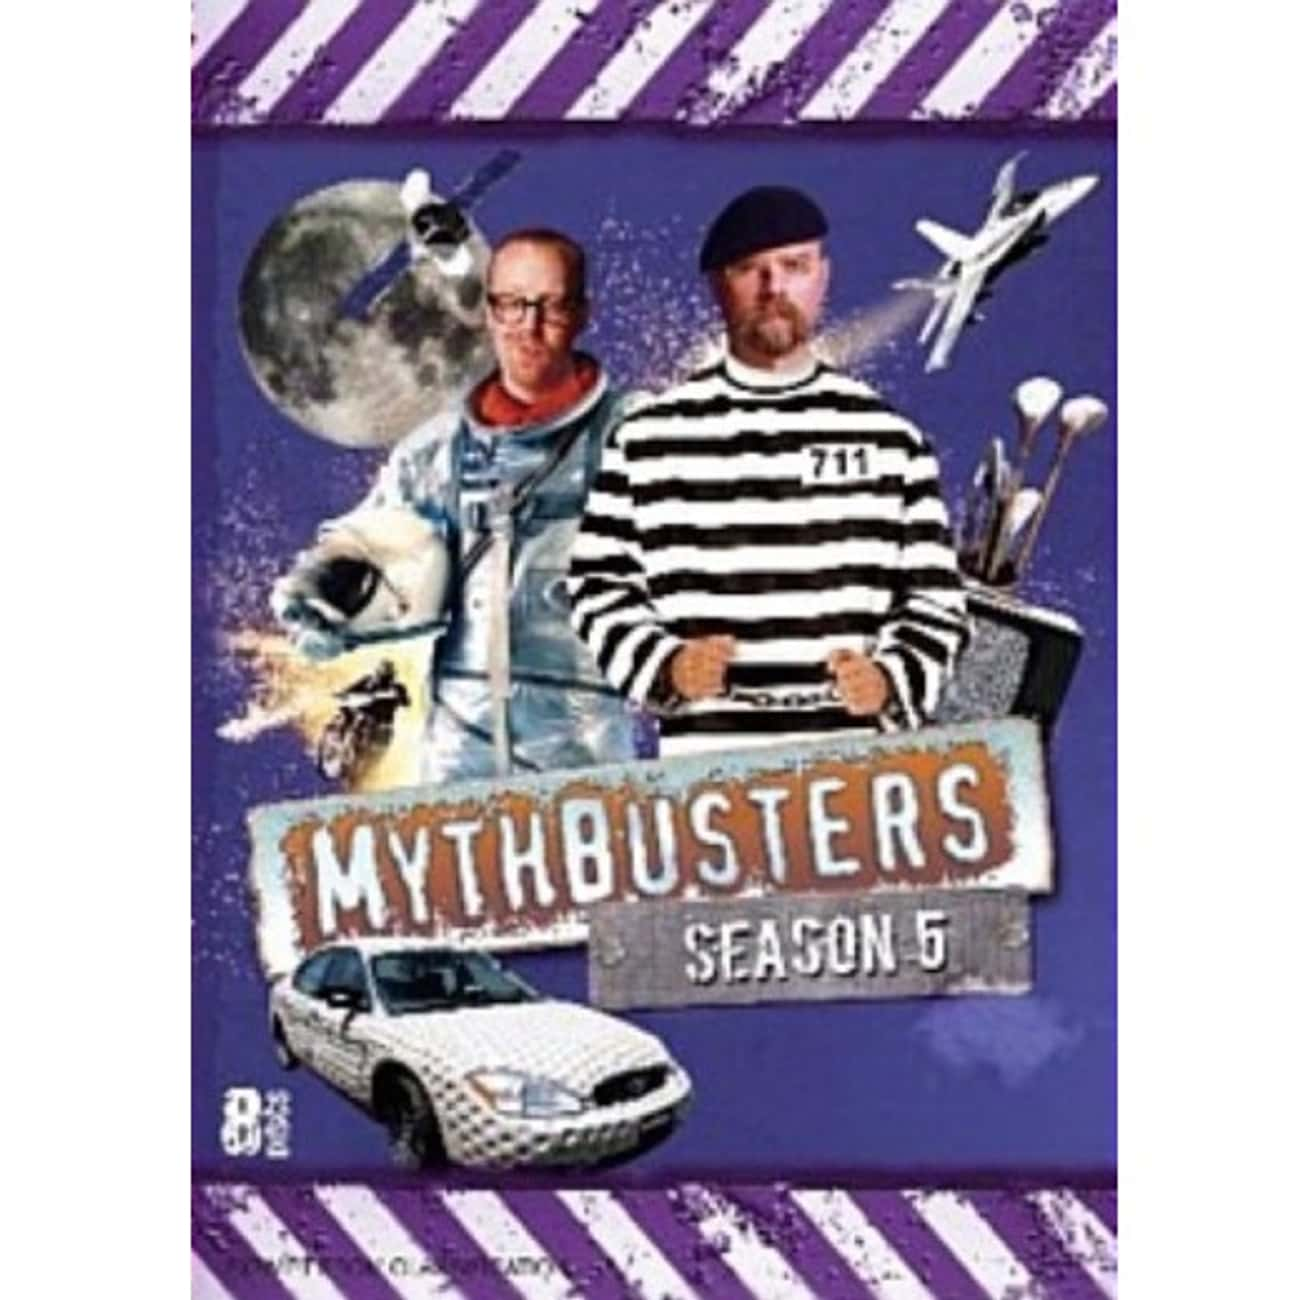 MythBustersSeason 5 is listed (or ranked) 4 on the list The Best Seasons of MythBusters